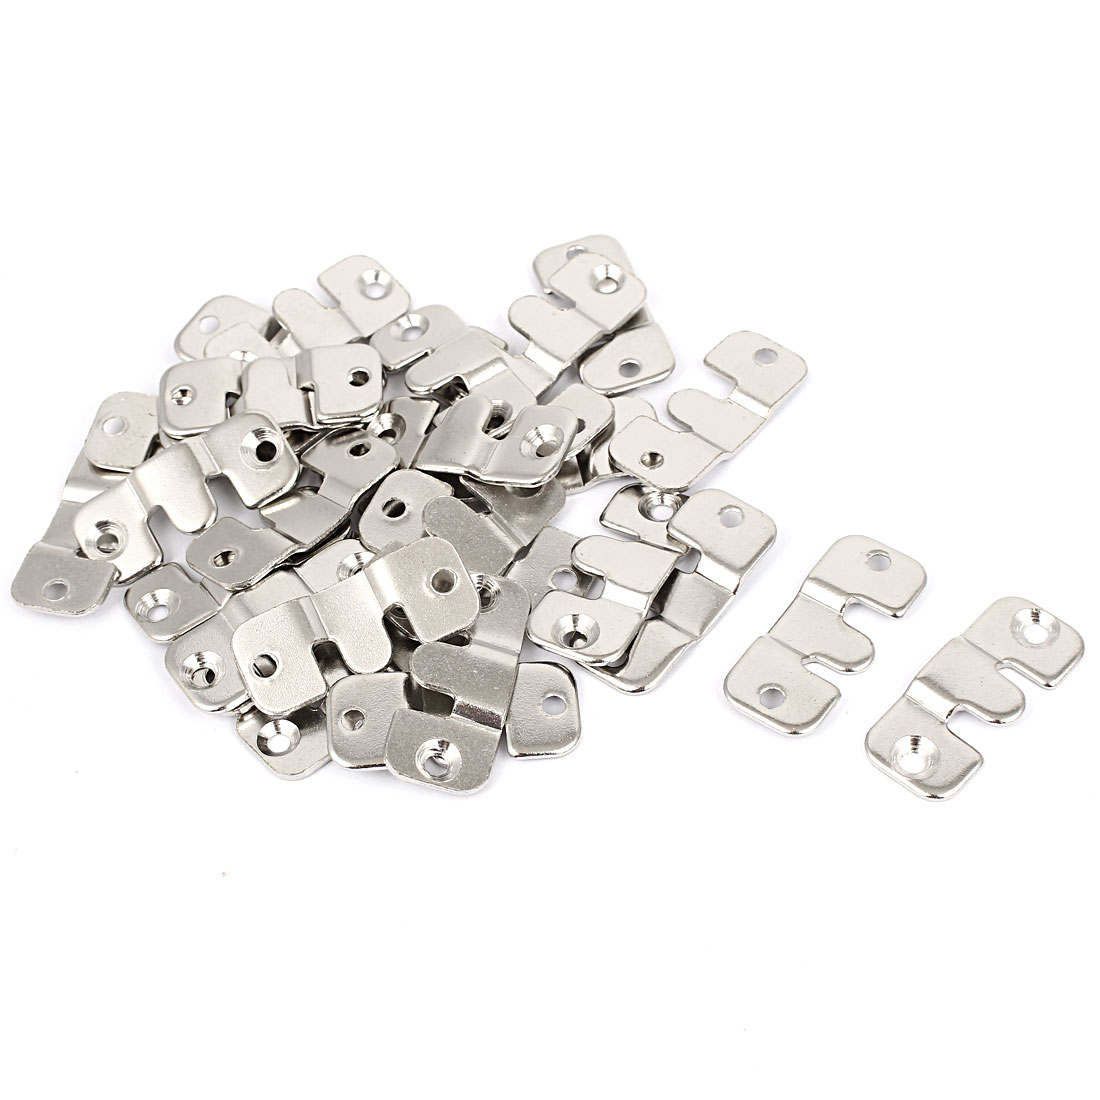 Sofa Furniture Photo Frame Metal Interlocking Connector 44mm Length 30pcs